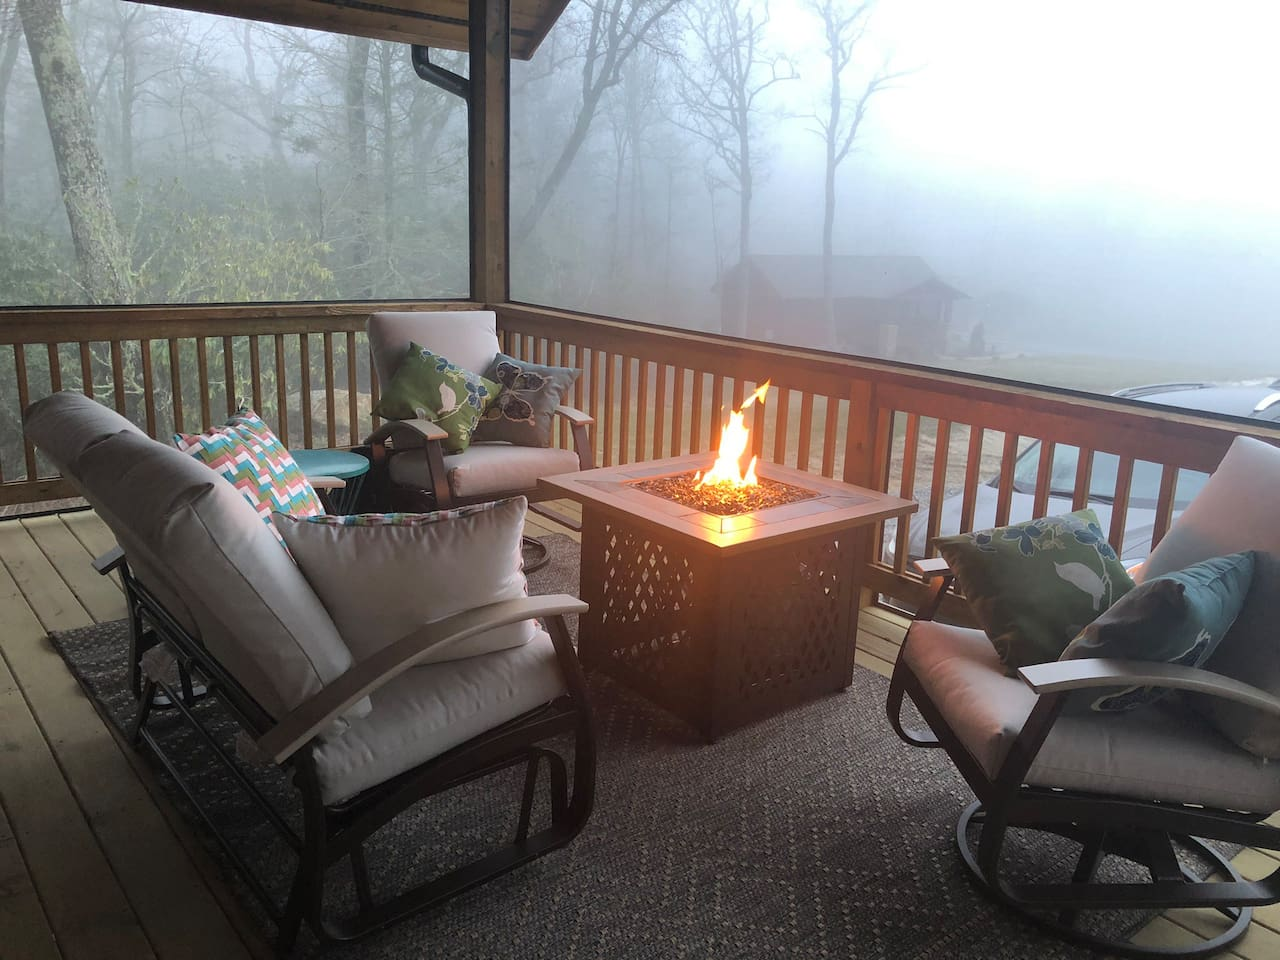 Outdoor Propane Fire Table in screened in porch.